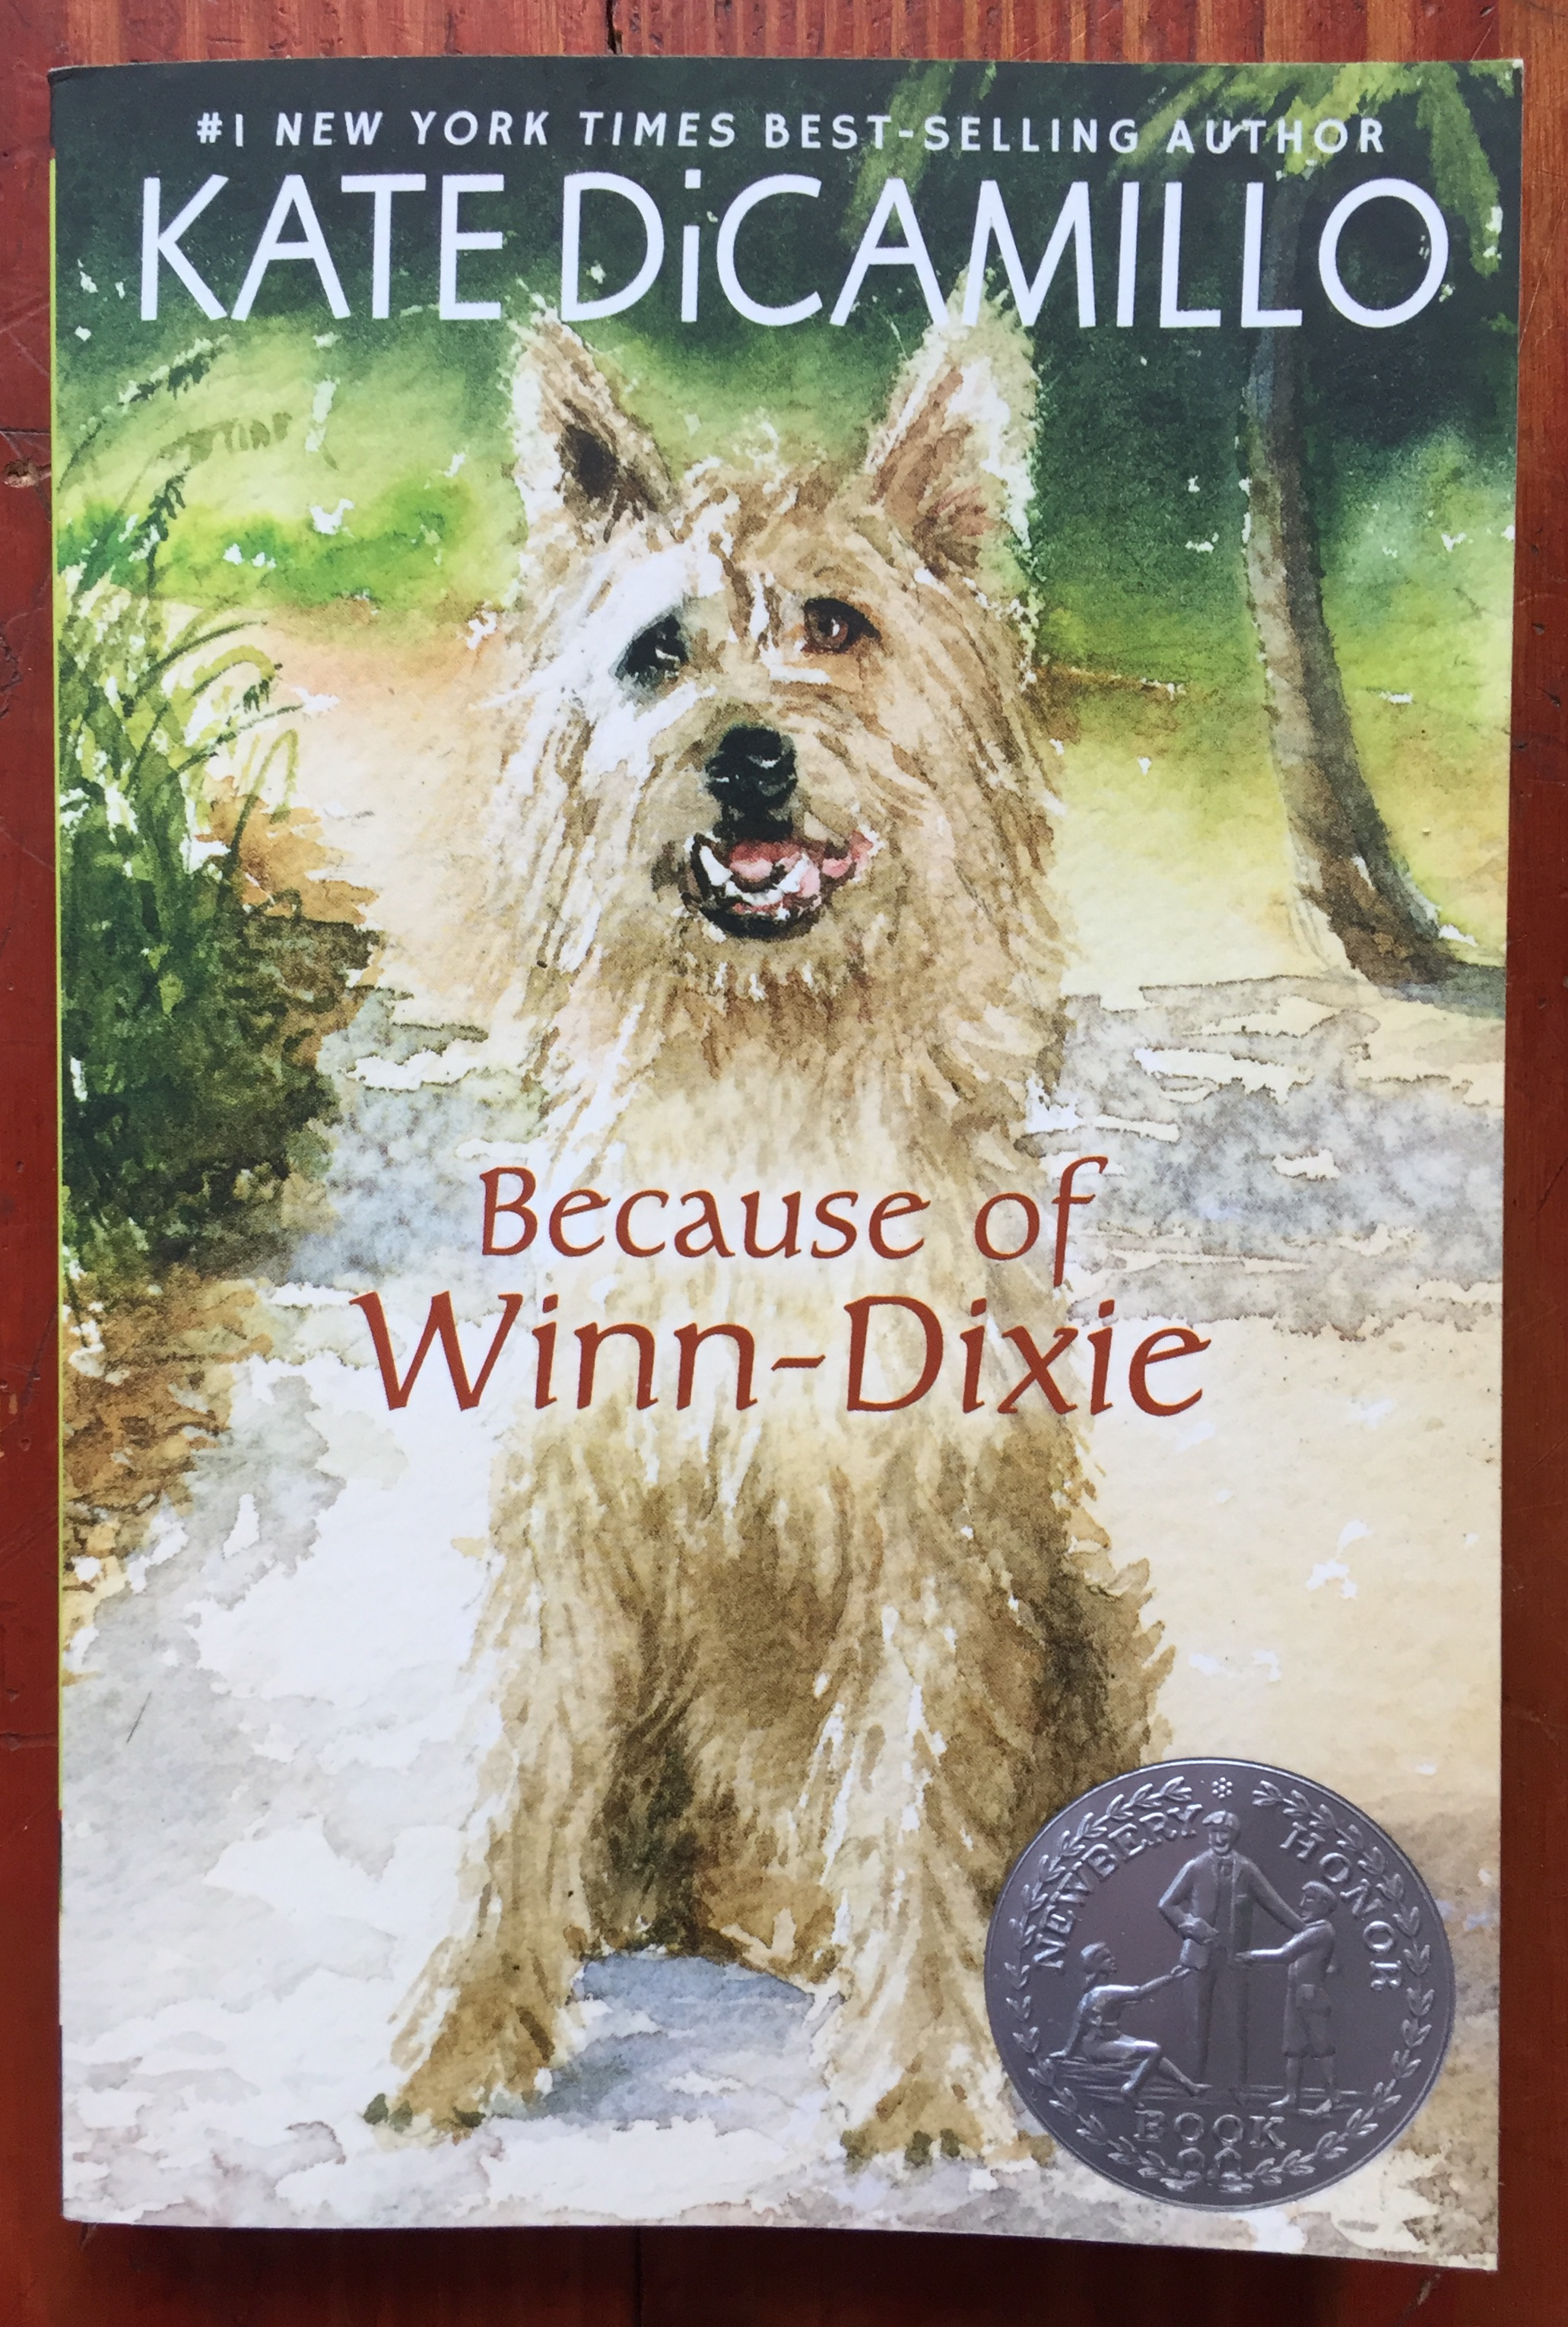 Because of Winn-Dixie kids chapter book by Kate DiCamillo